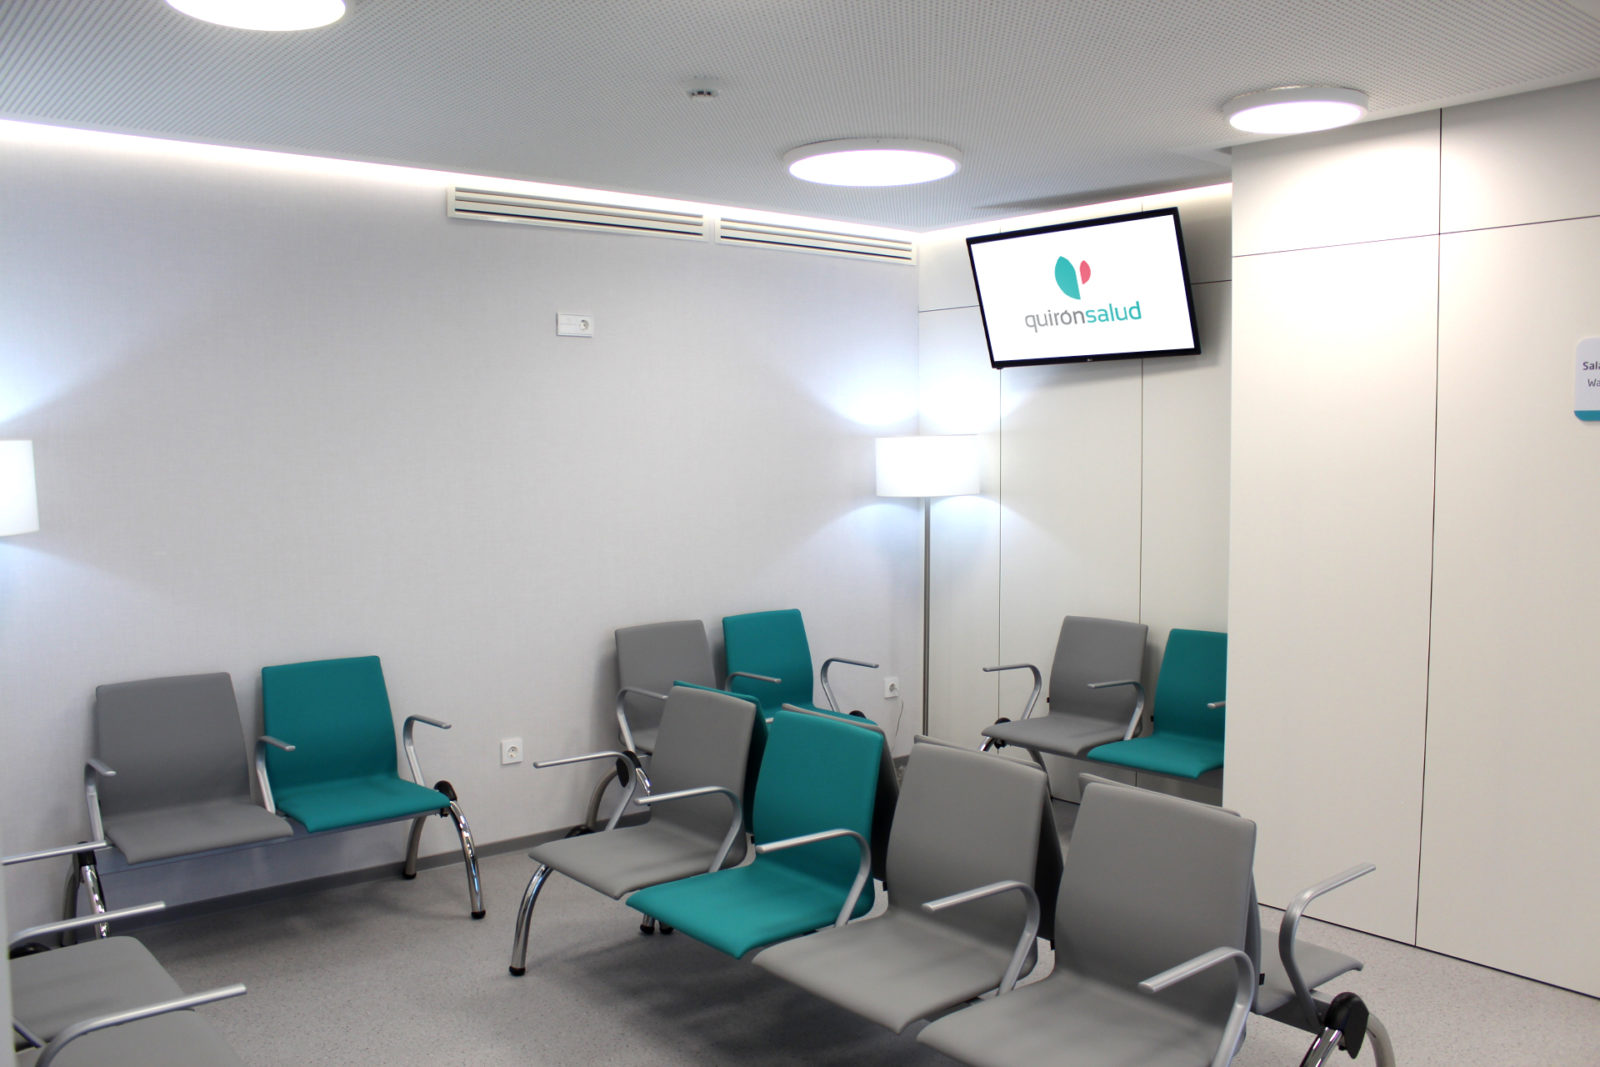 Quirónsalud consolidates its Leadership with the Opening of its new Centre in Alicante